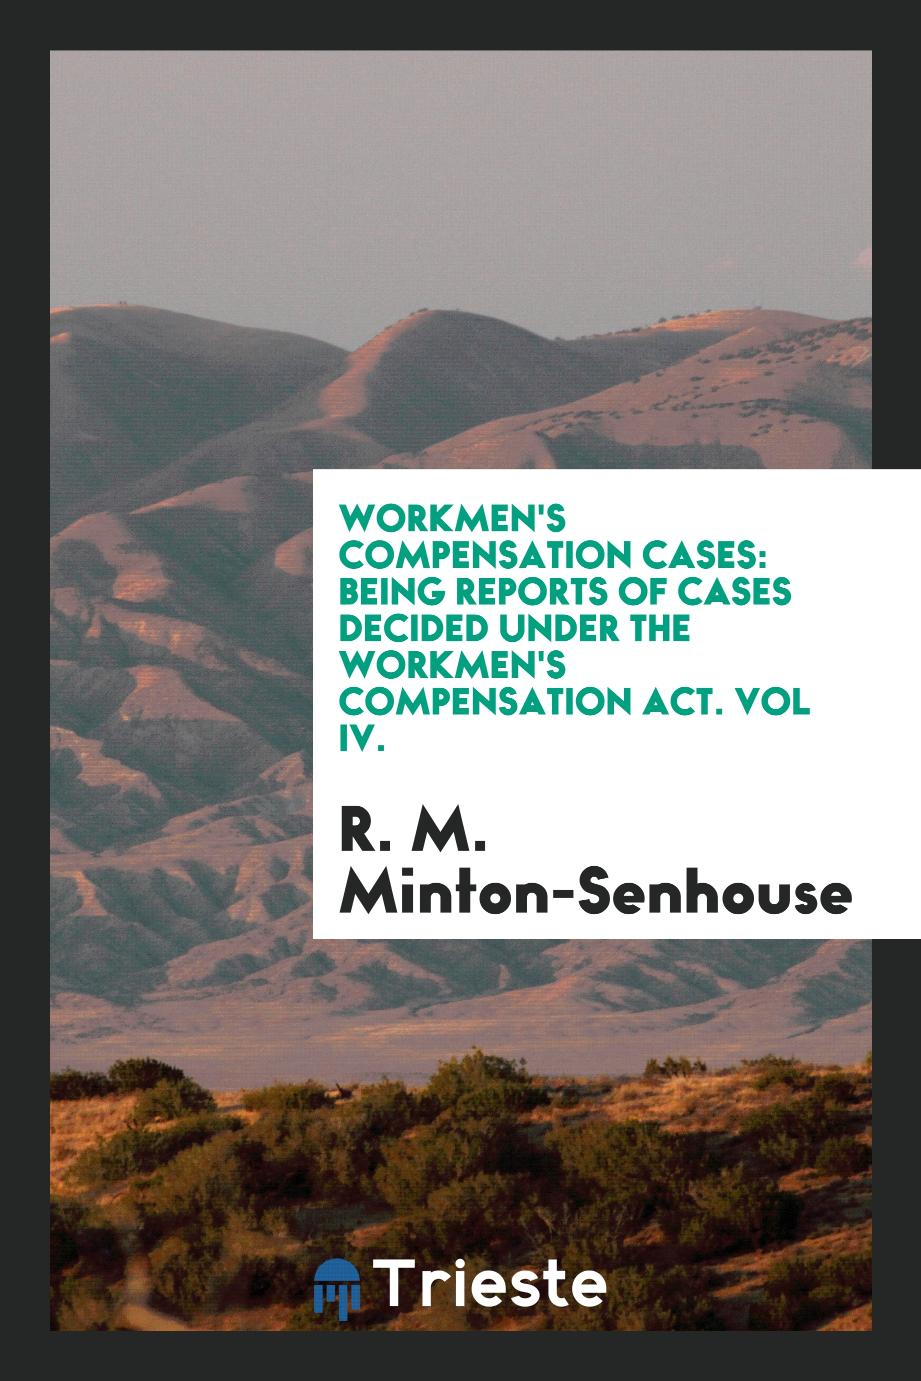 Workmen's Compensation Cases: Being Reports of Cases Decided Under the Workmen's Compensation Act. Vol IV.